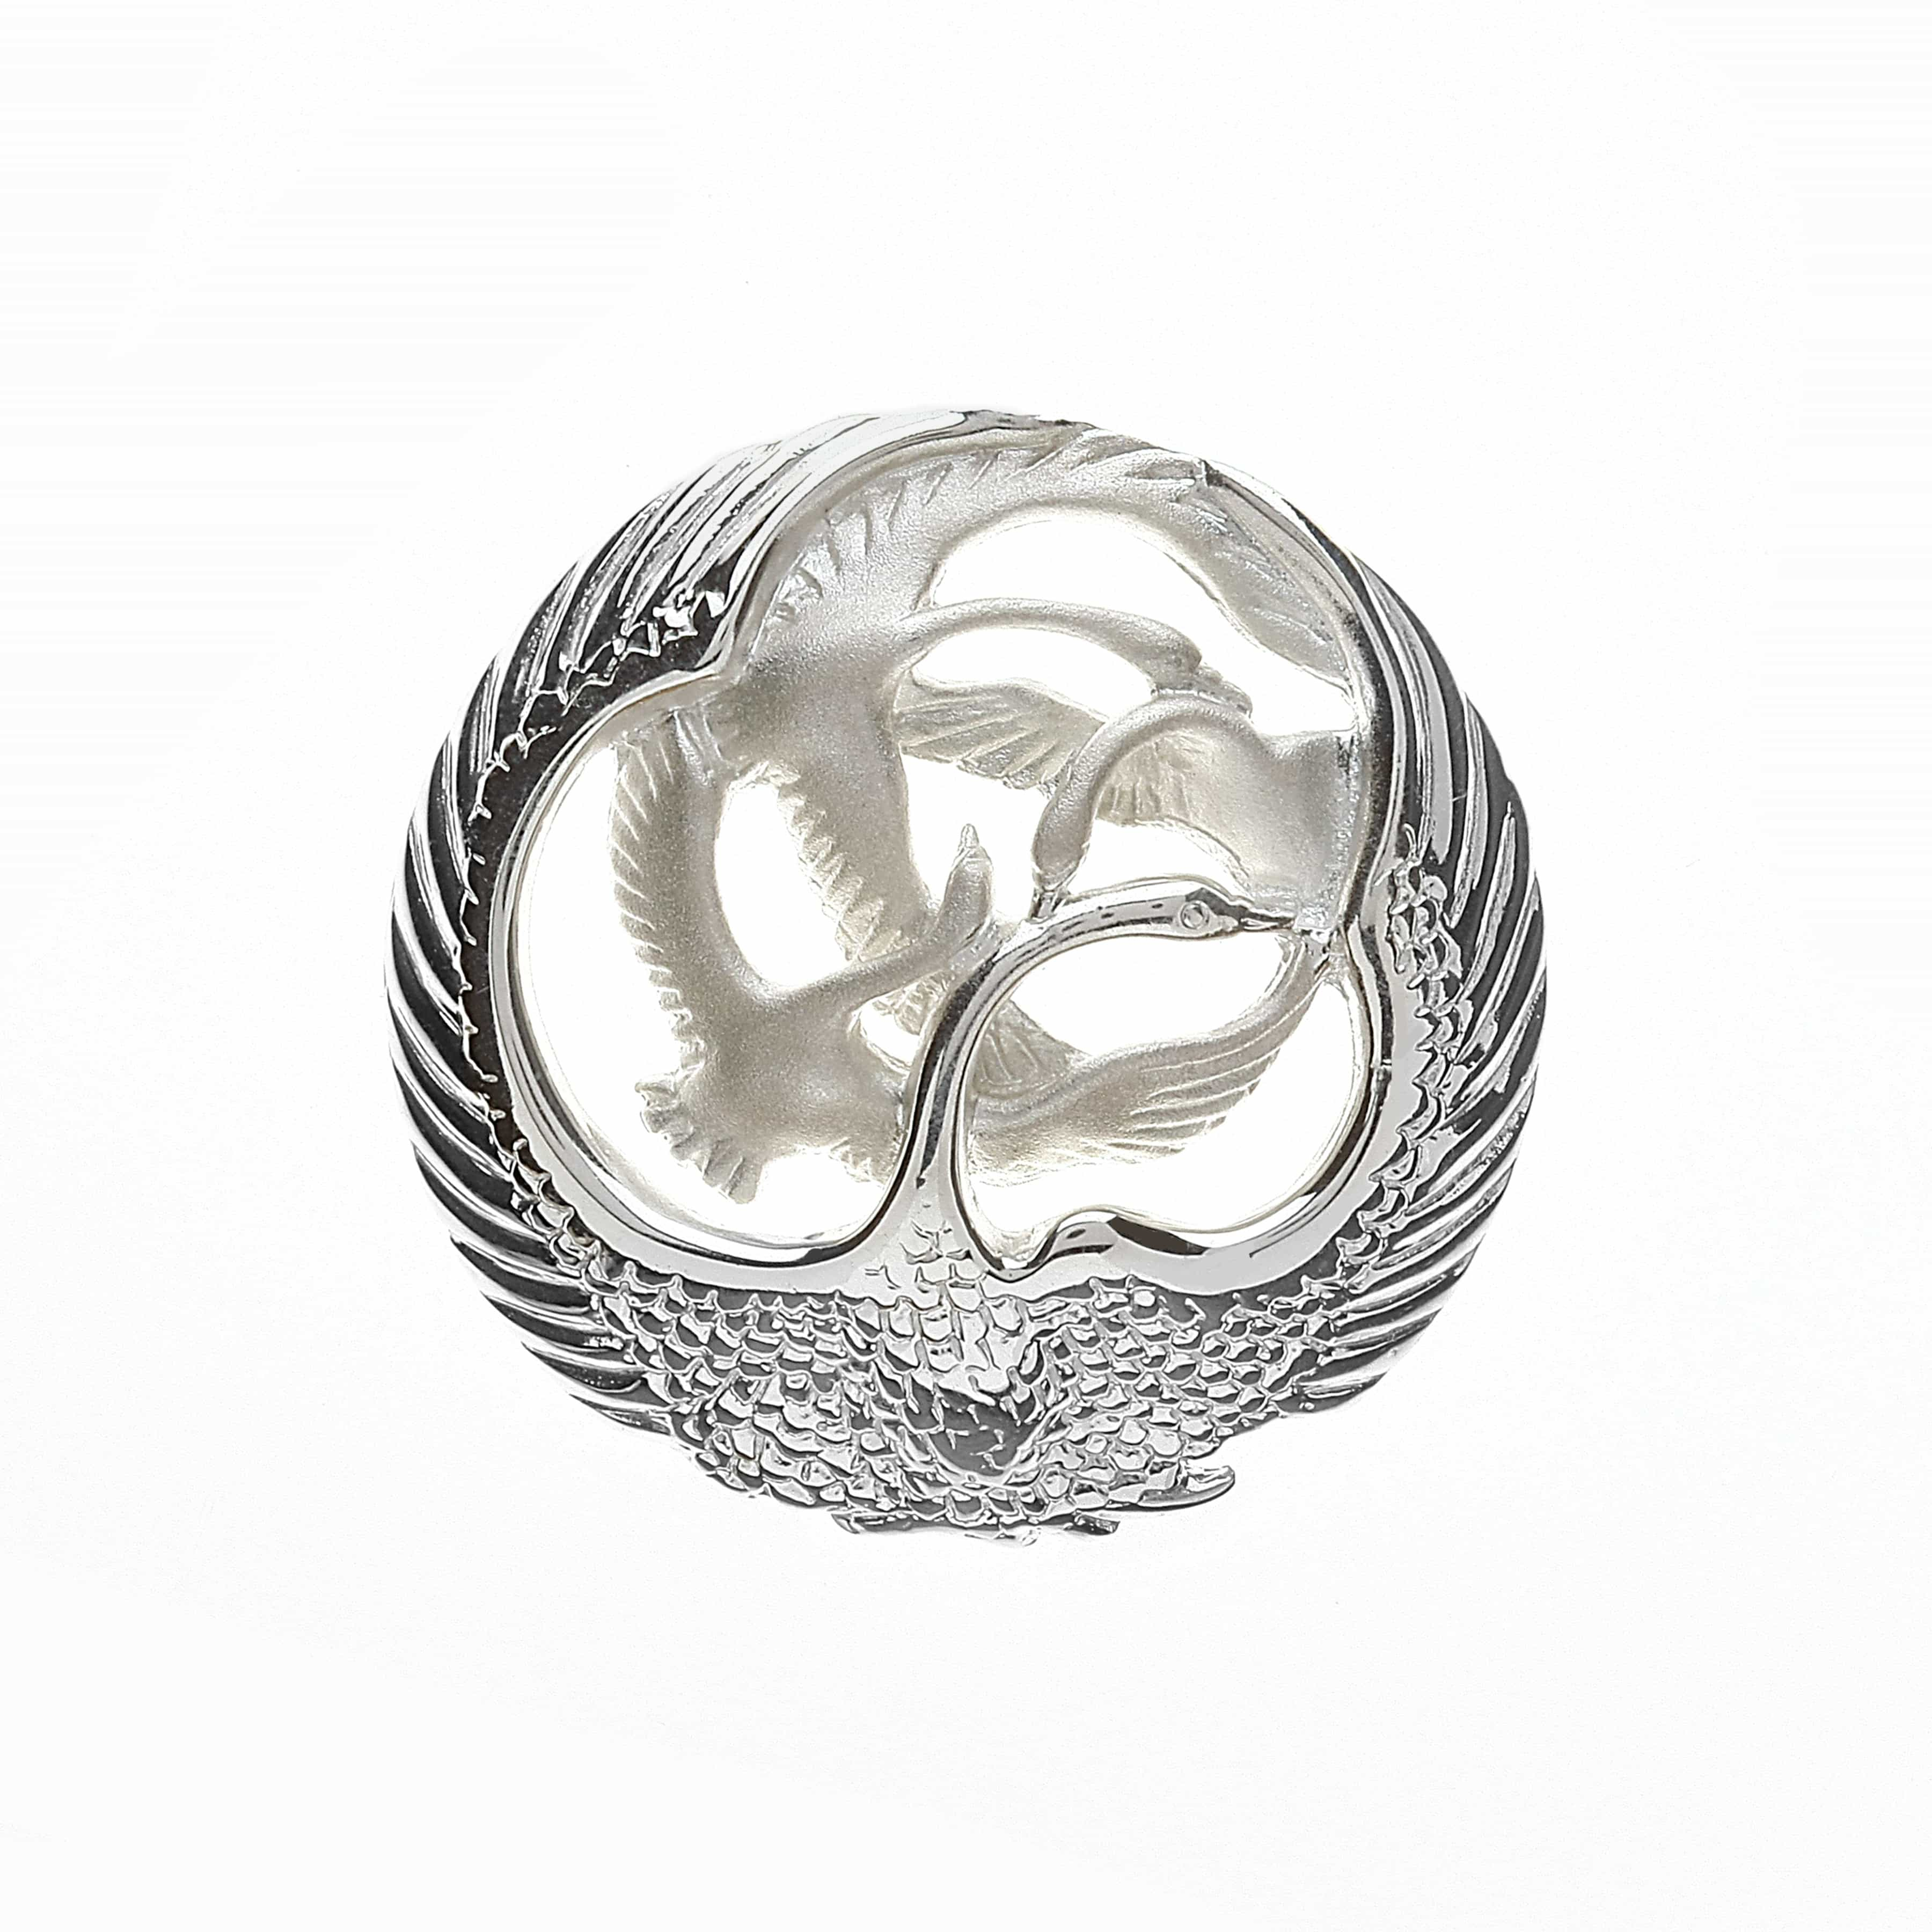 Four Swans Sculpted Brooch